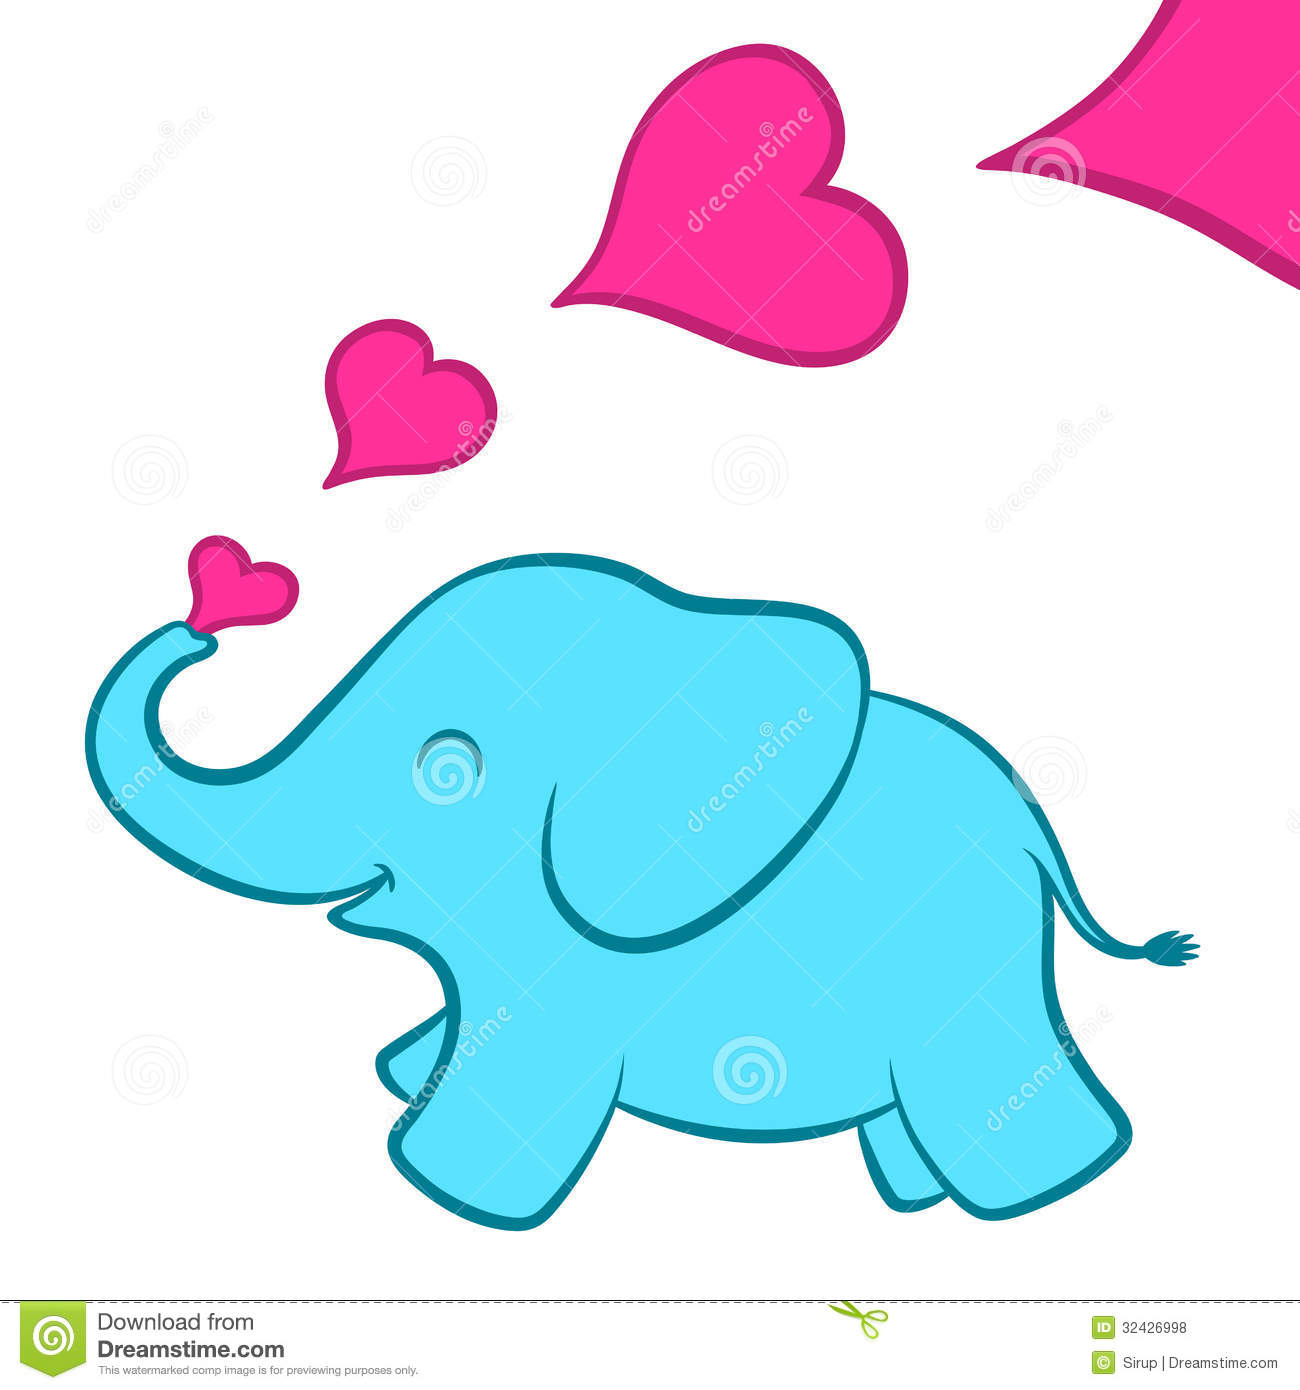 Free Download Baby Calf Clipart Baby Elephant Calf Pink Hearts